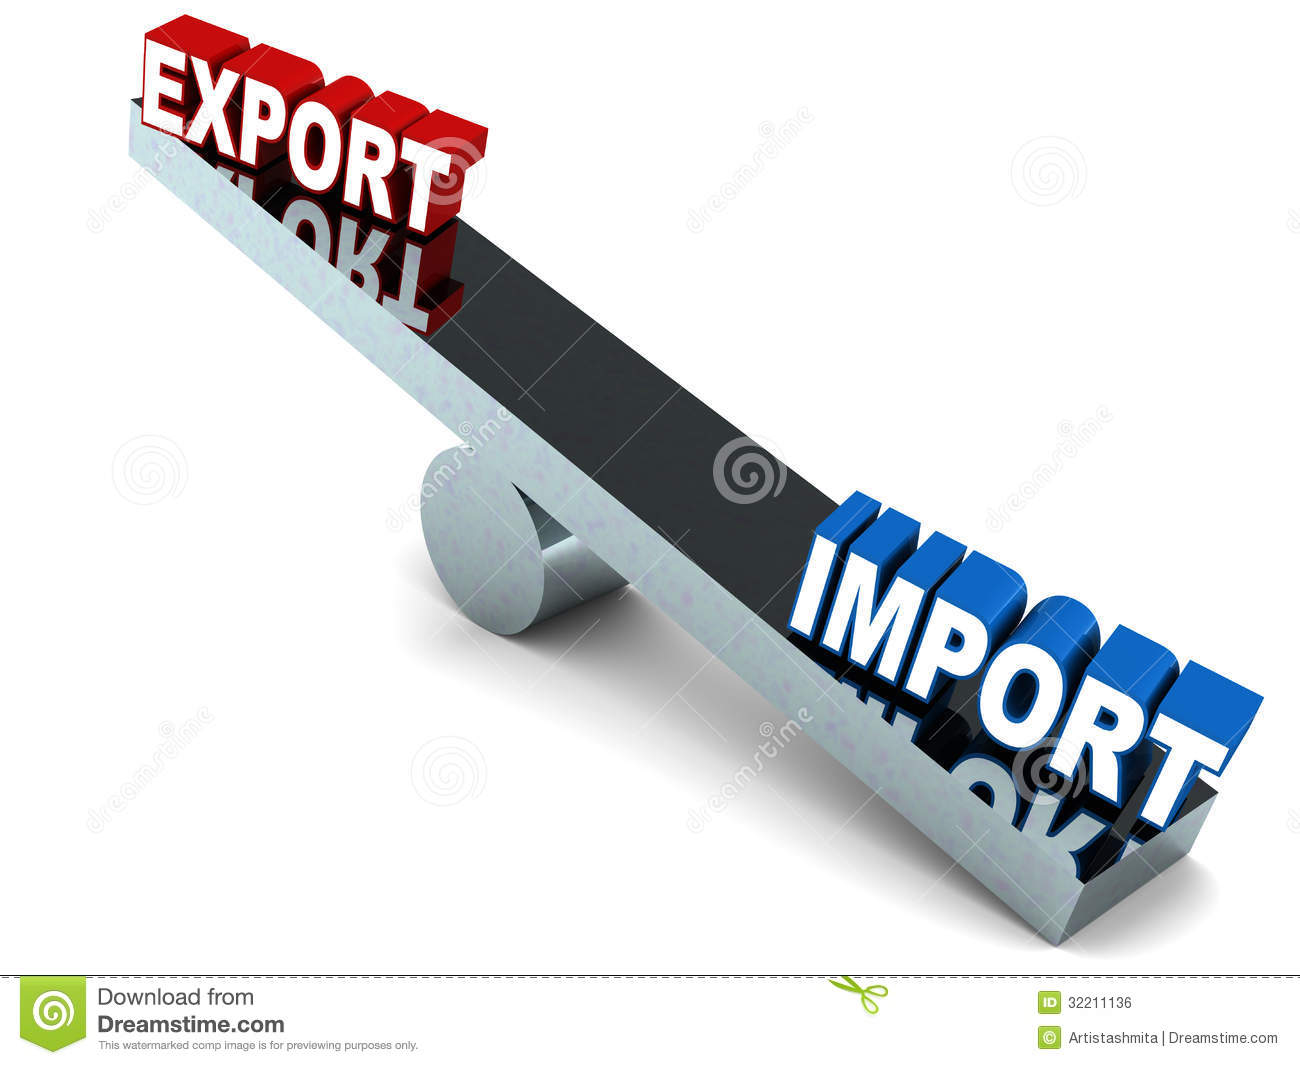 Imports versus exports, on a metal see-saw, more imports, less exports ...